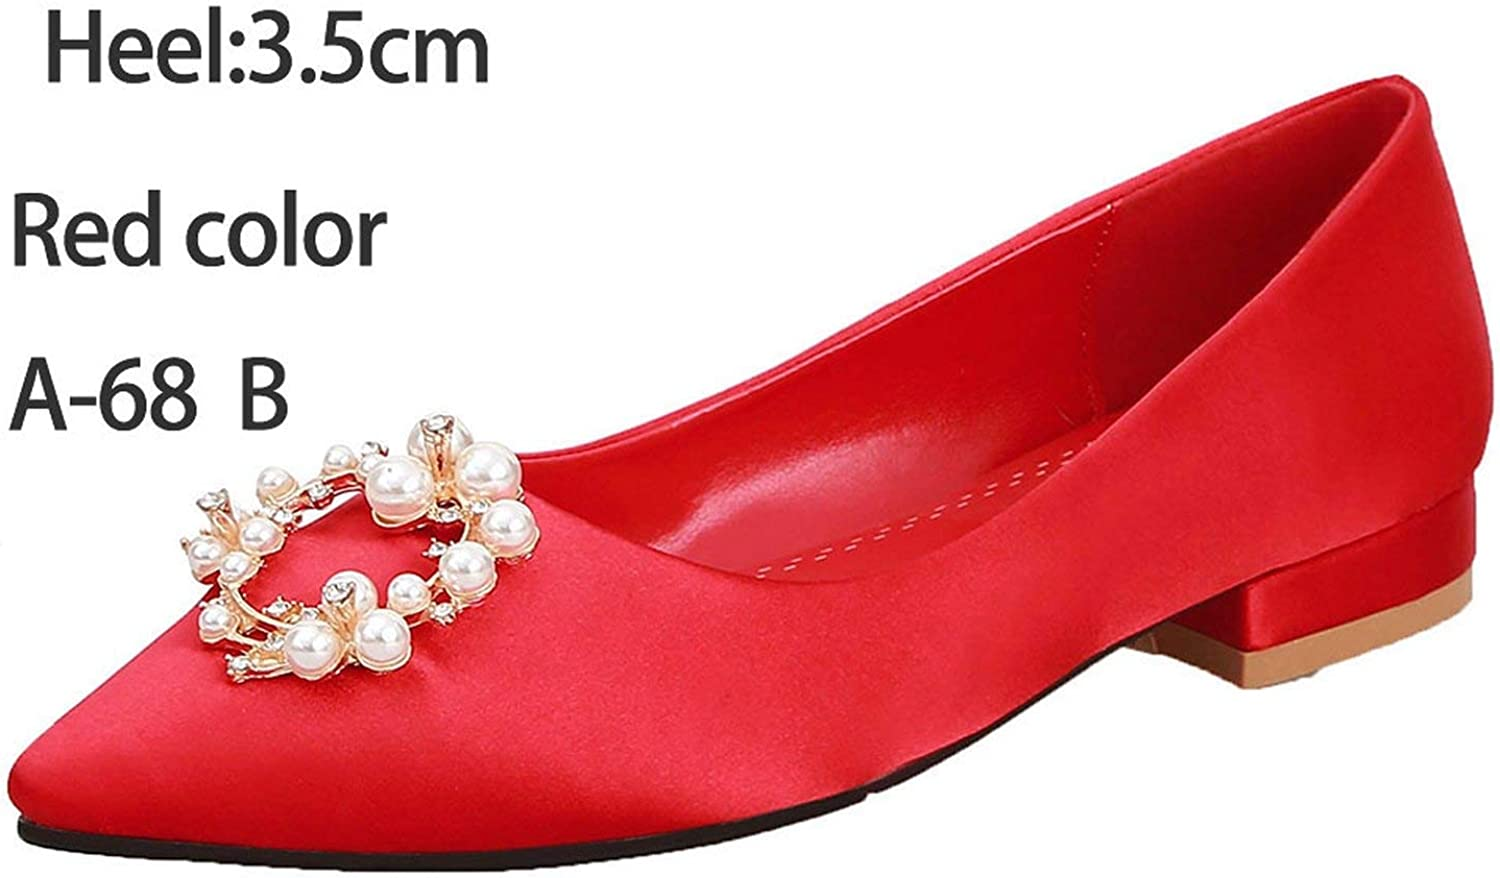 FINDYOU Women shoes Pumps Wedding Party shoes Thick Heel Pointed Toe Prom Dancing shoes Crystal Bride shoes,3.5cm Red1 B,9